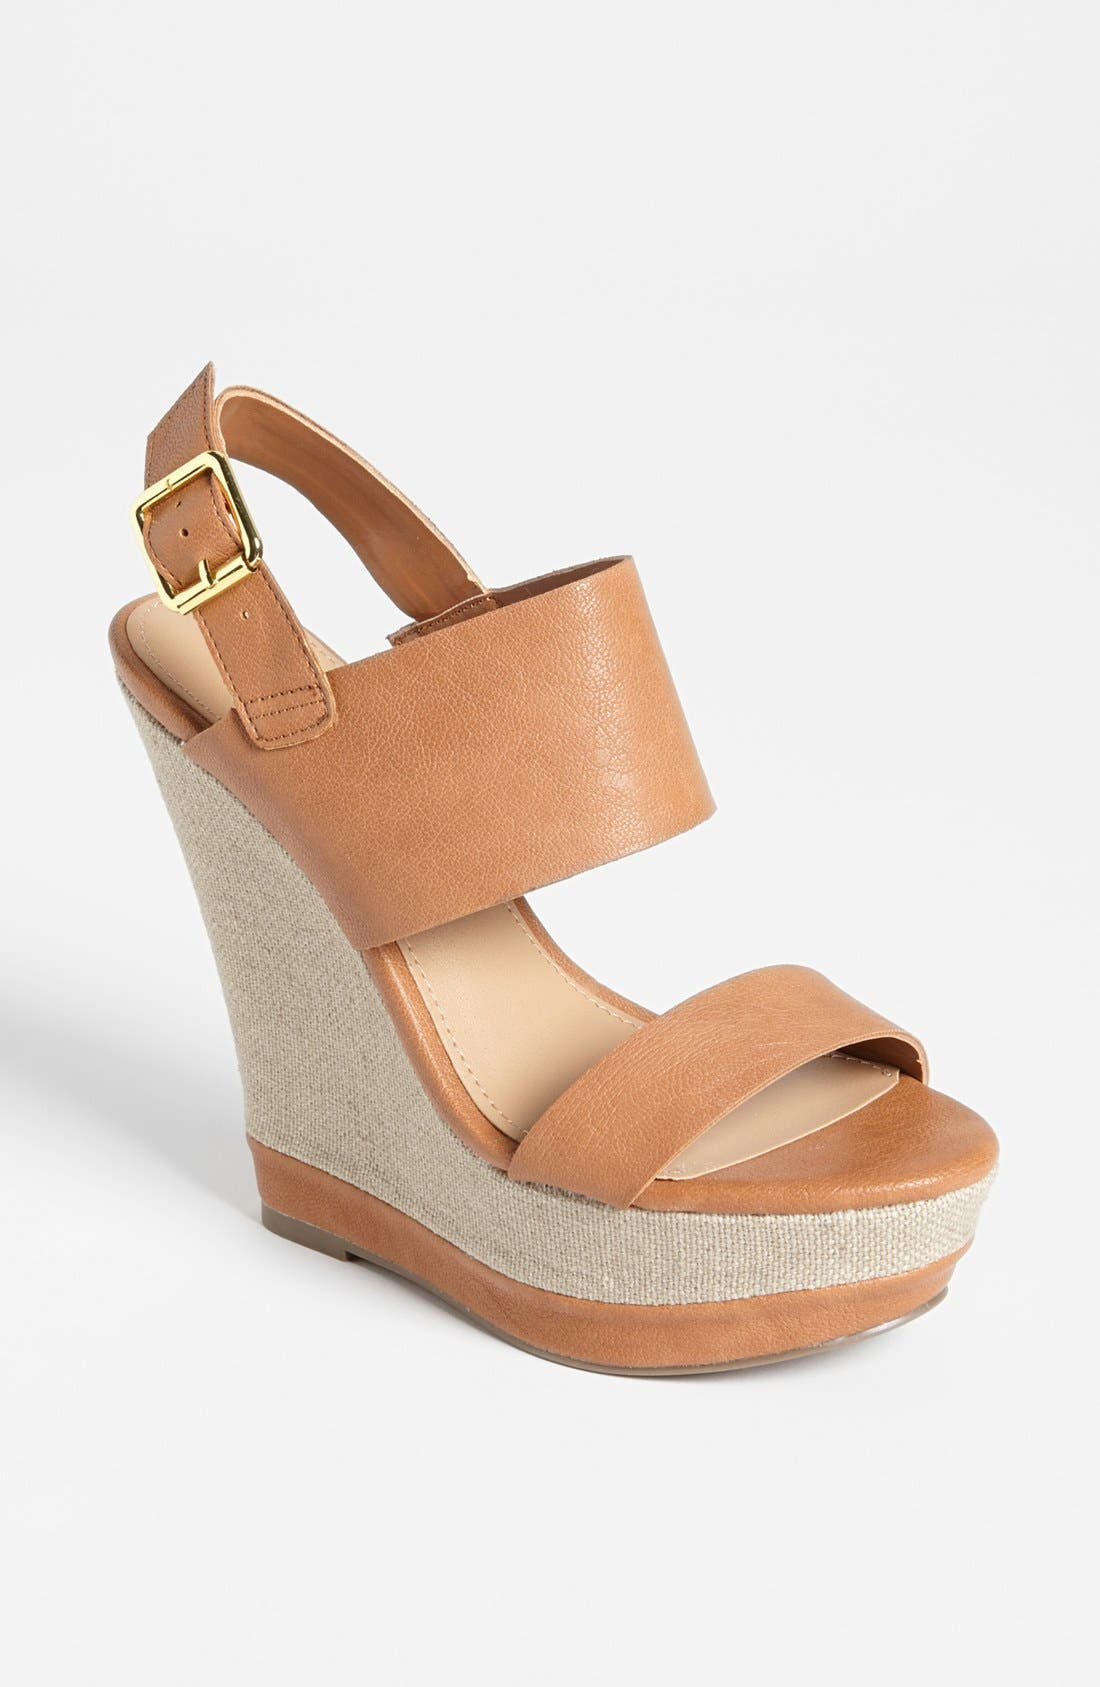 Main Image - Steve Madden 'Warmthh' Wedge Sandal